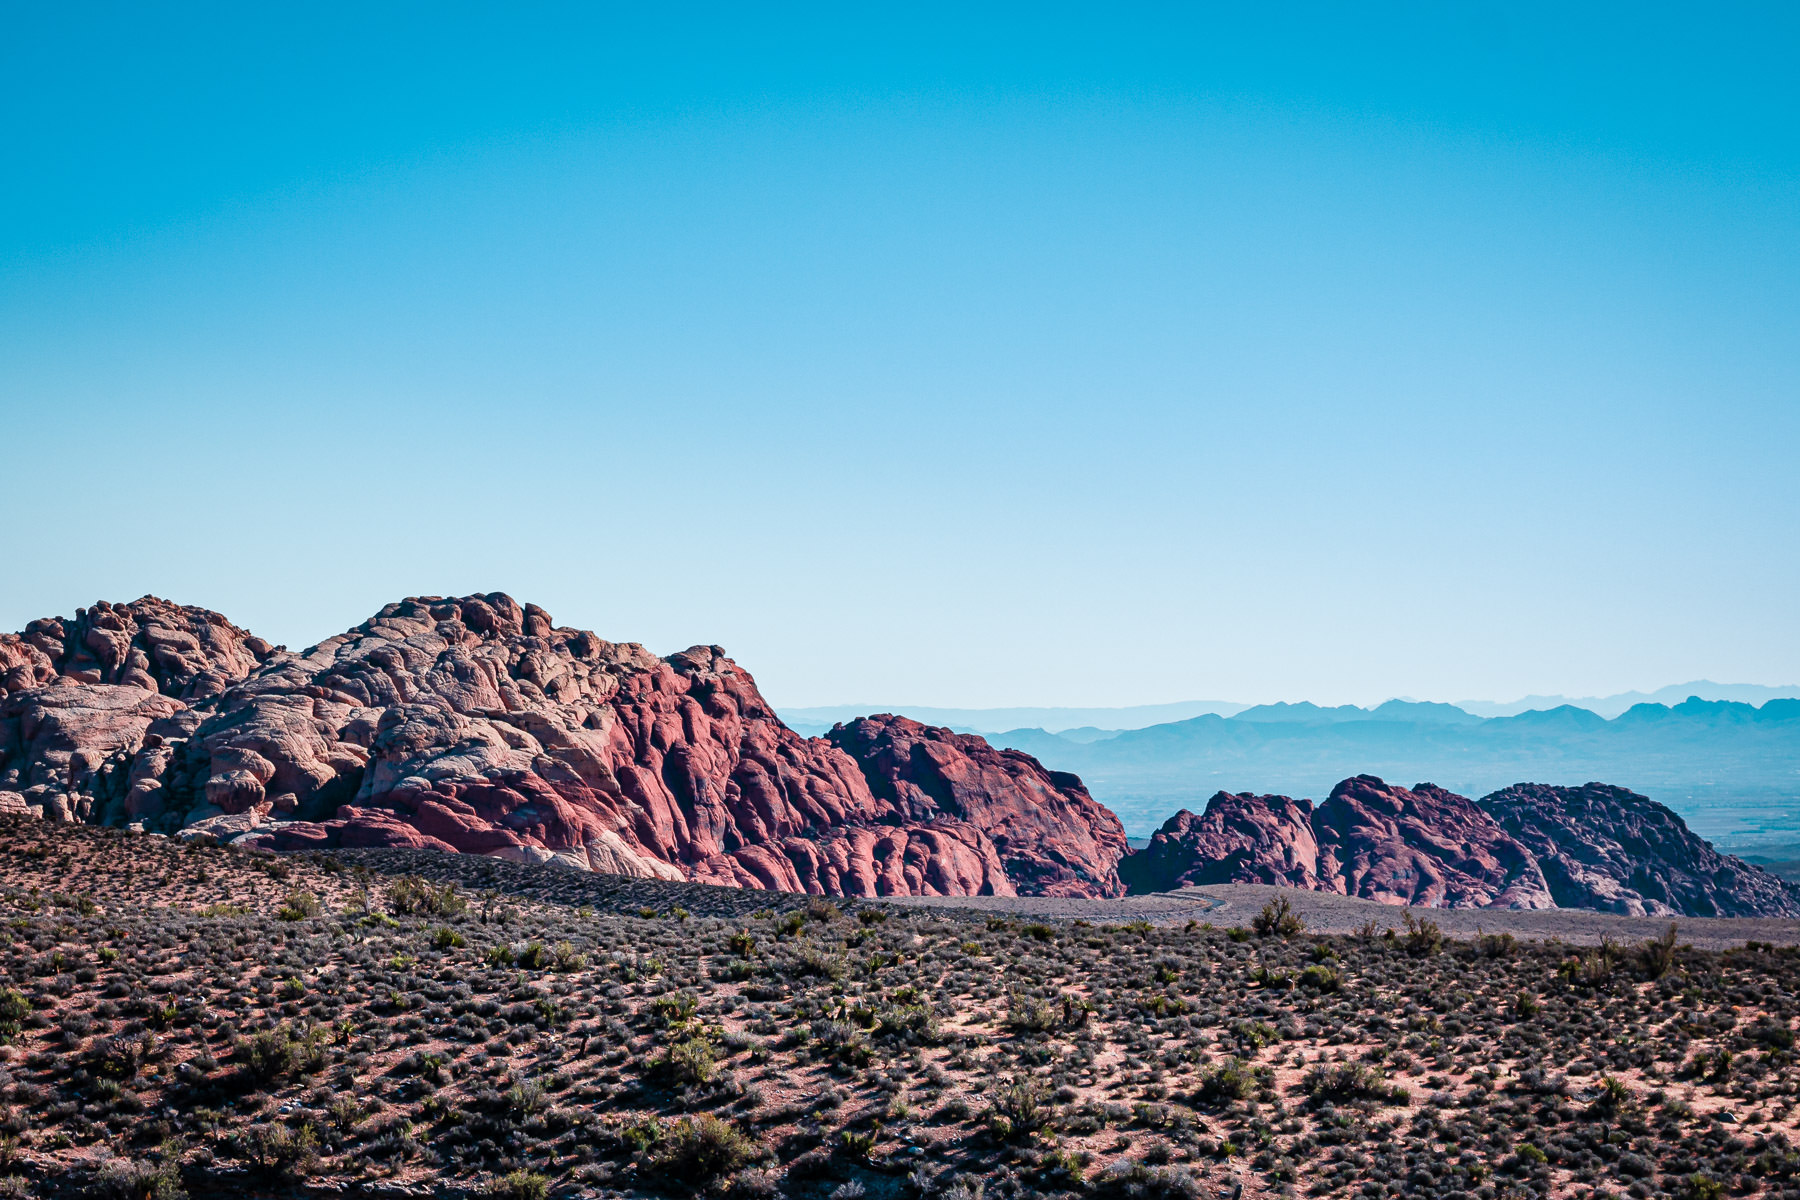 The arid landscape of Nevada's Red Rock Canyon.